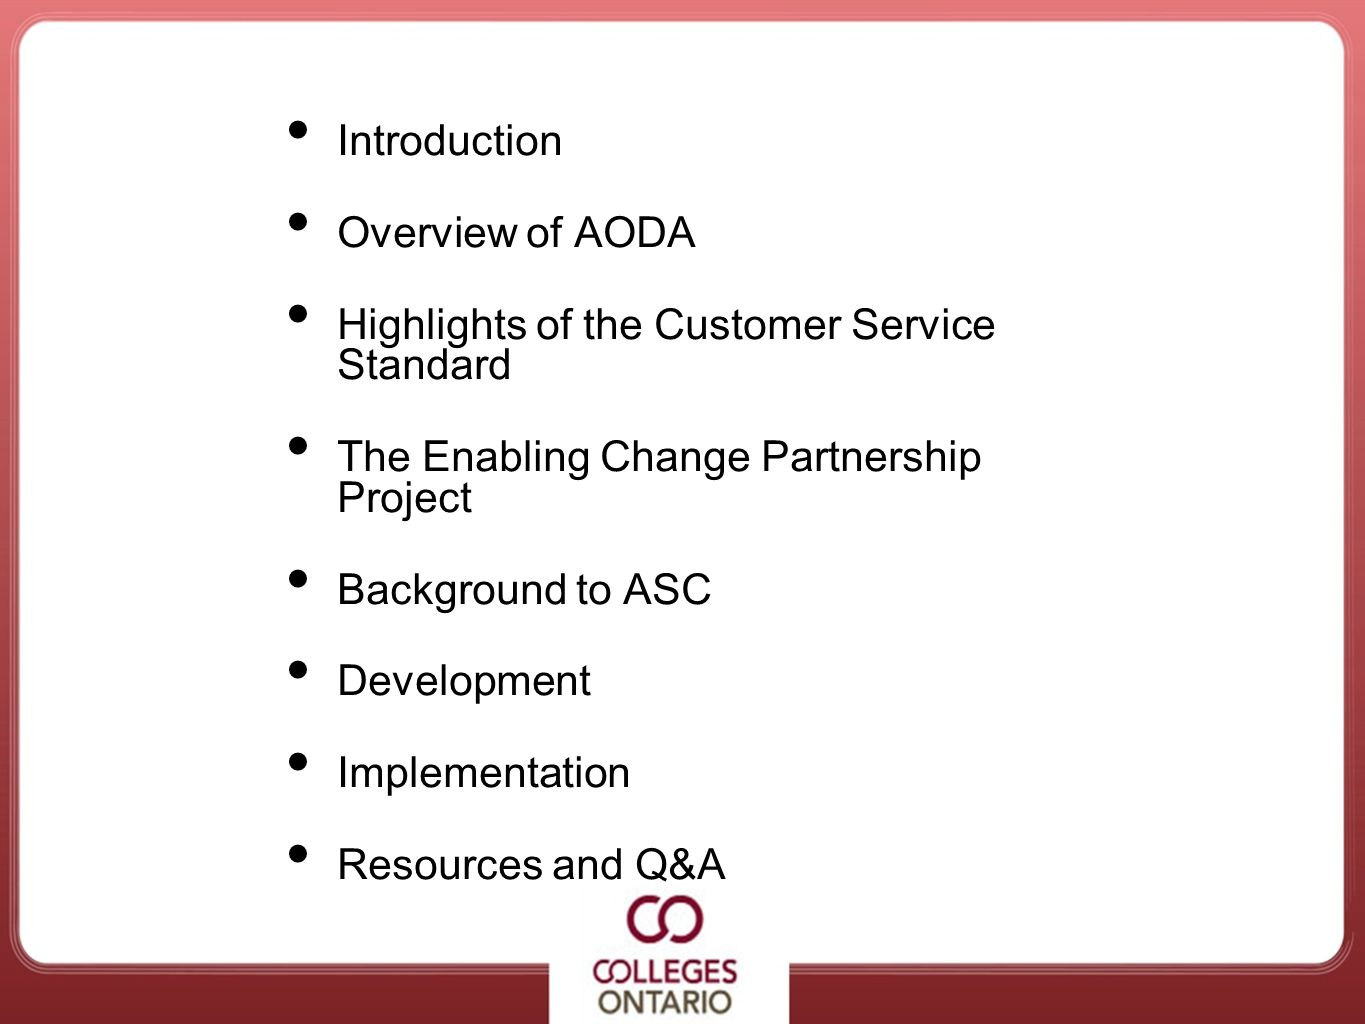 Agenda Introduction Overview of AODA Highlights of the Customer Service Standard The Enabling Change Partnership Project Background to ASC Development